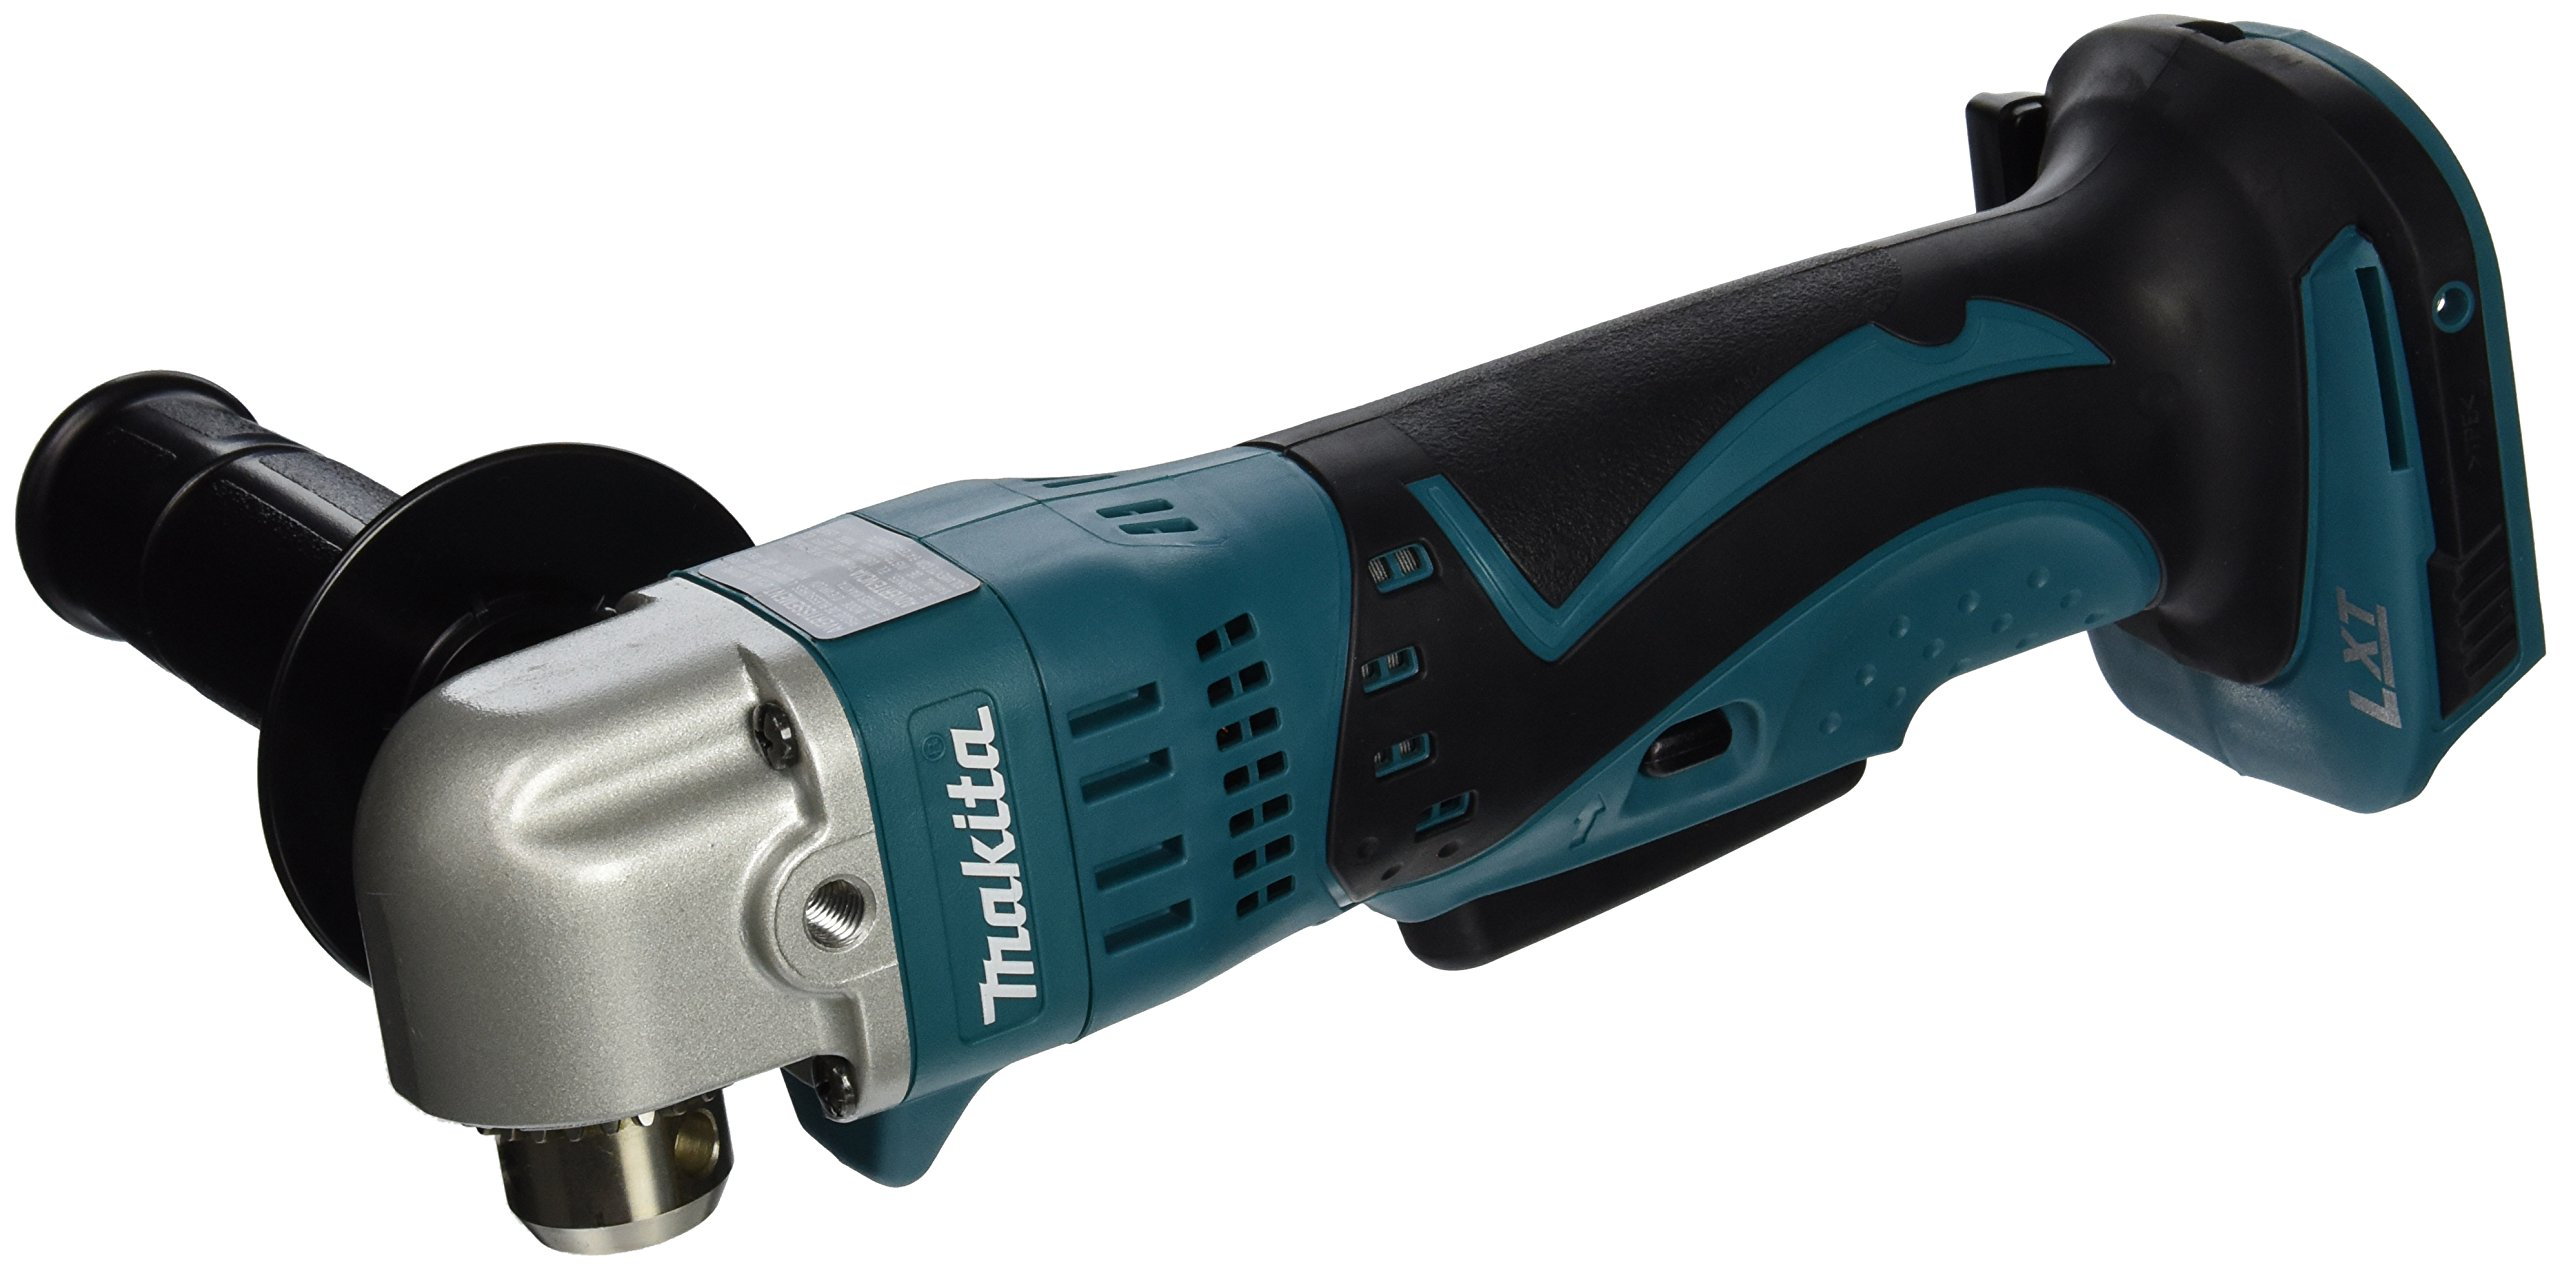 Makita XAD01Z 18V LXT Lithium-Ion Cordless 3/8'' Angle Drill, Tool Only